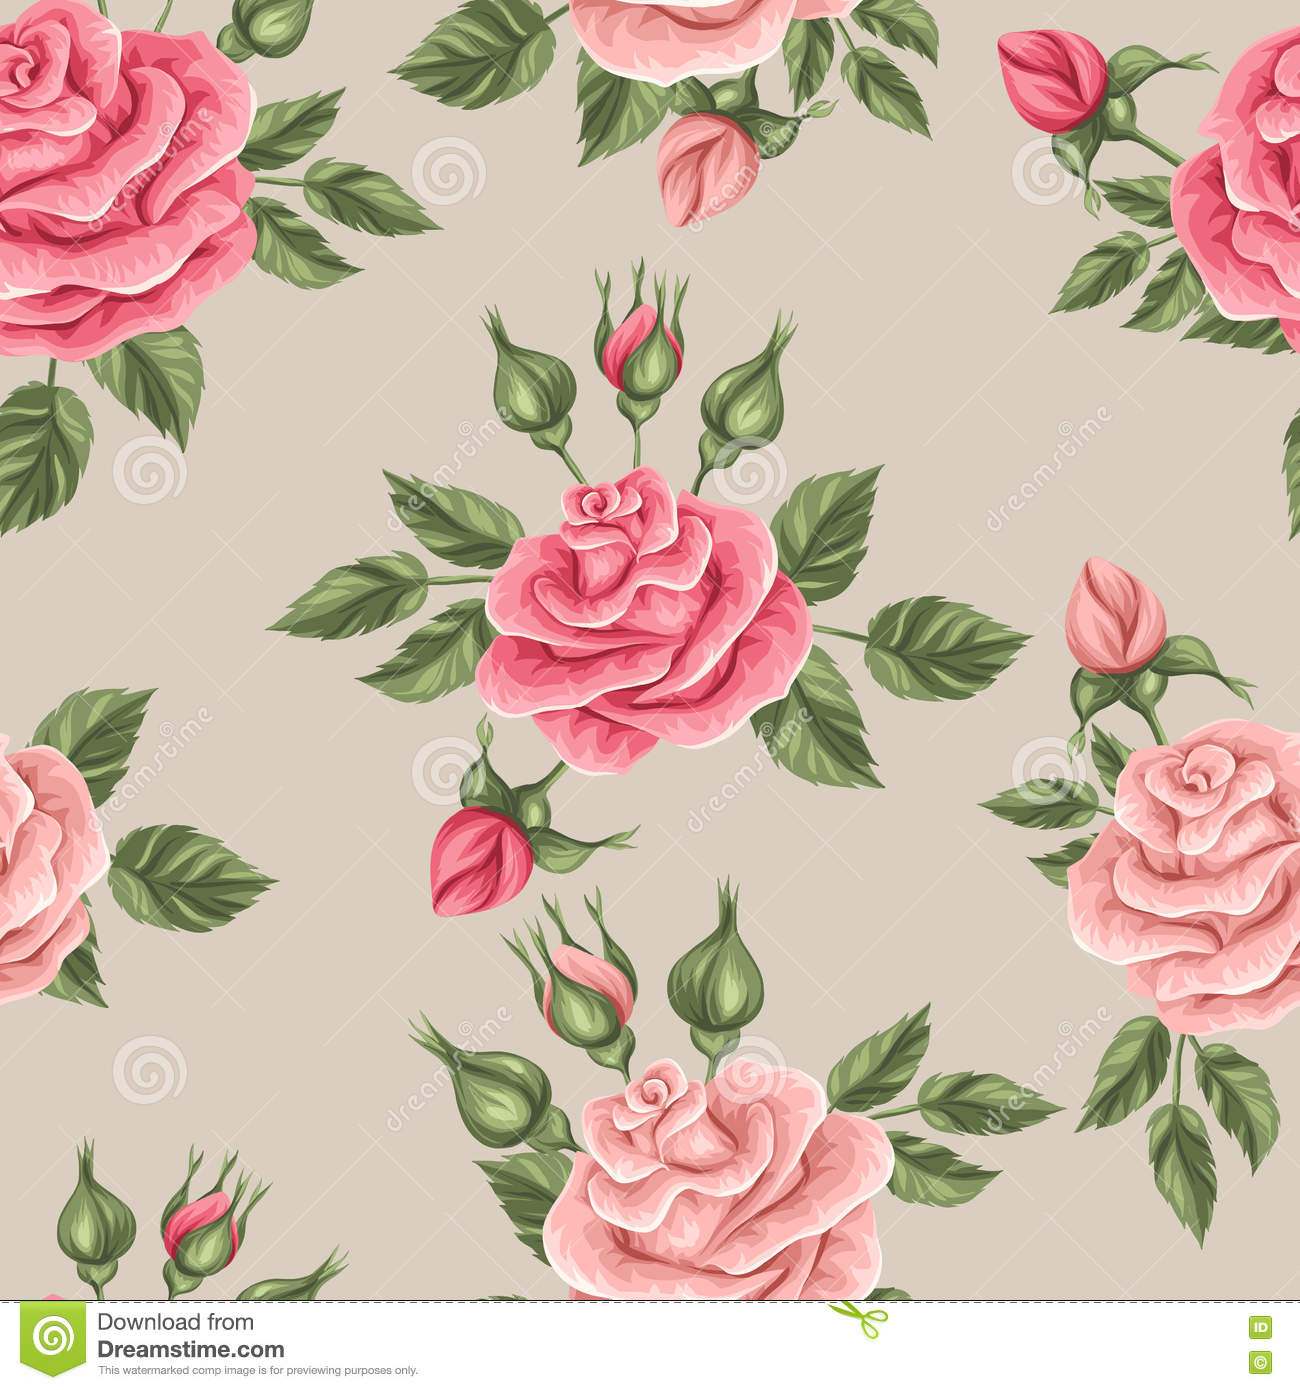 Seamless Pattern With Vintage Roses Decorative Retro